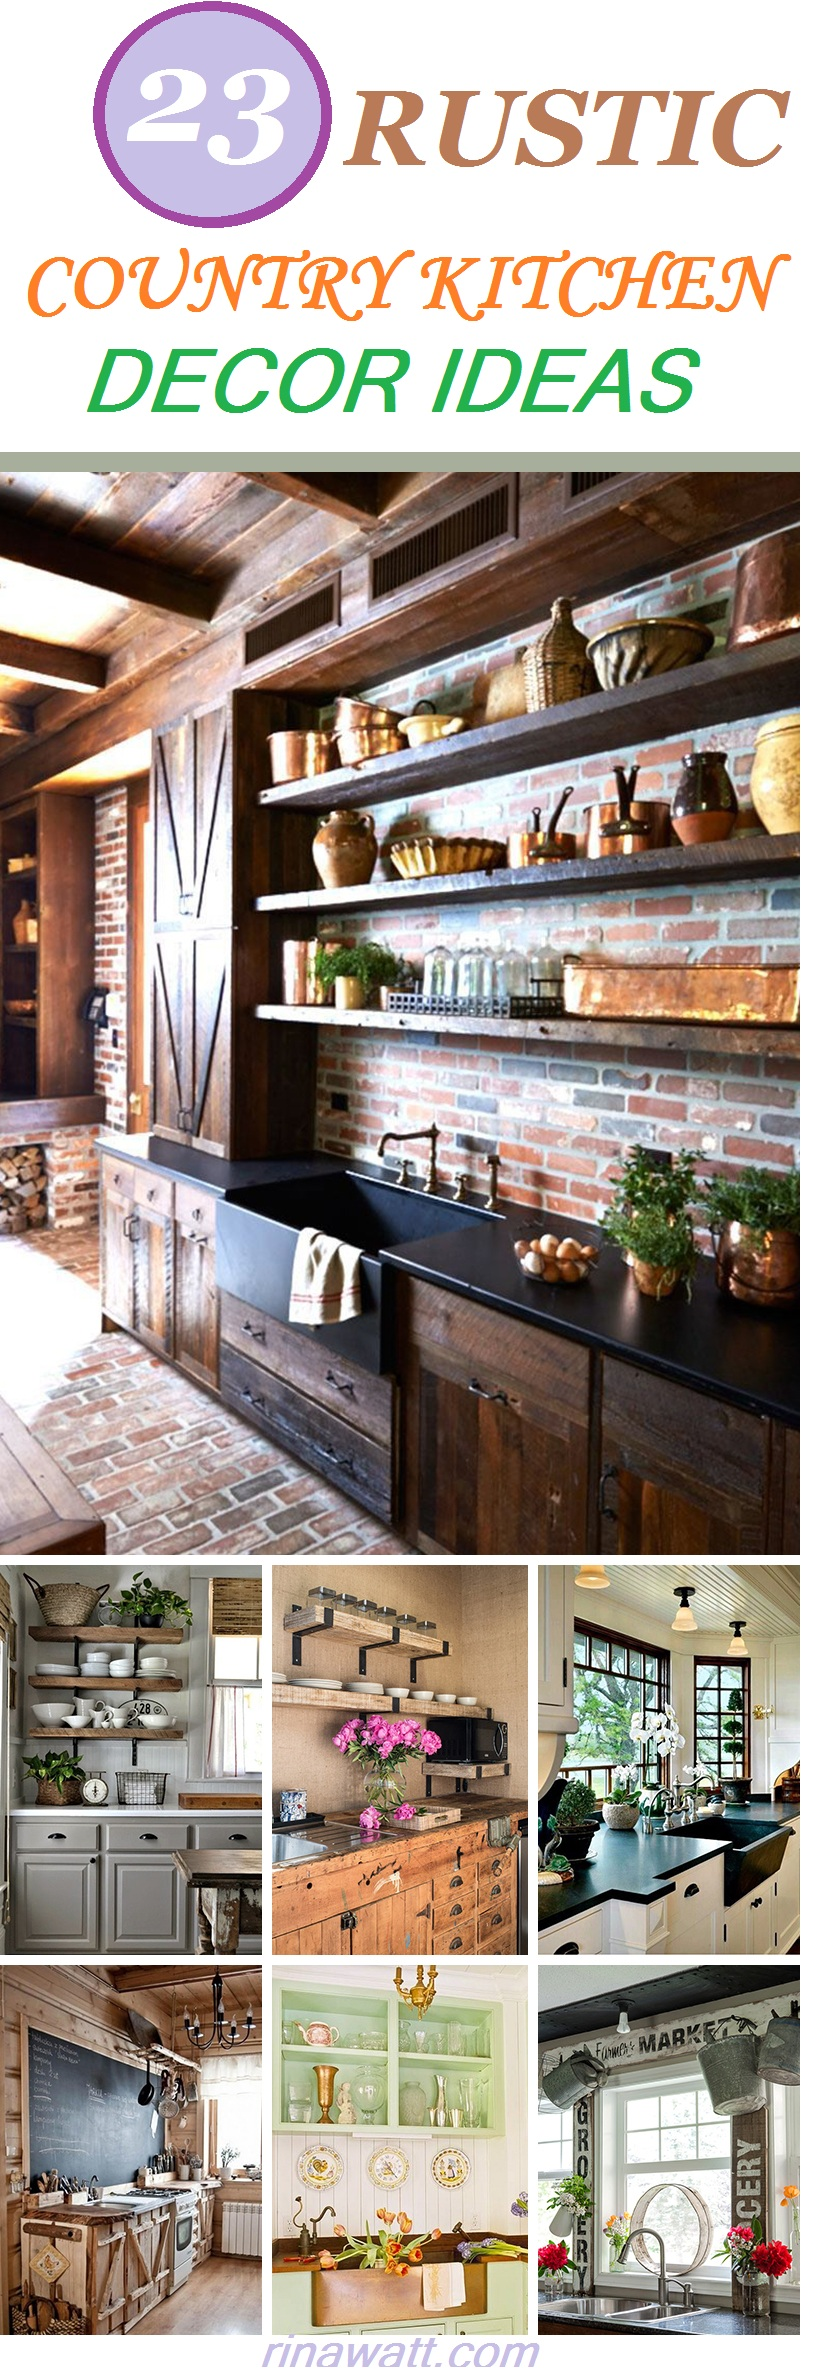 23 Rustic Country Kitchen Design Ideas To Jump Start Your Next Remodel Rina Watt Blogger Home Decor Diy And Recipes